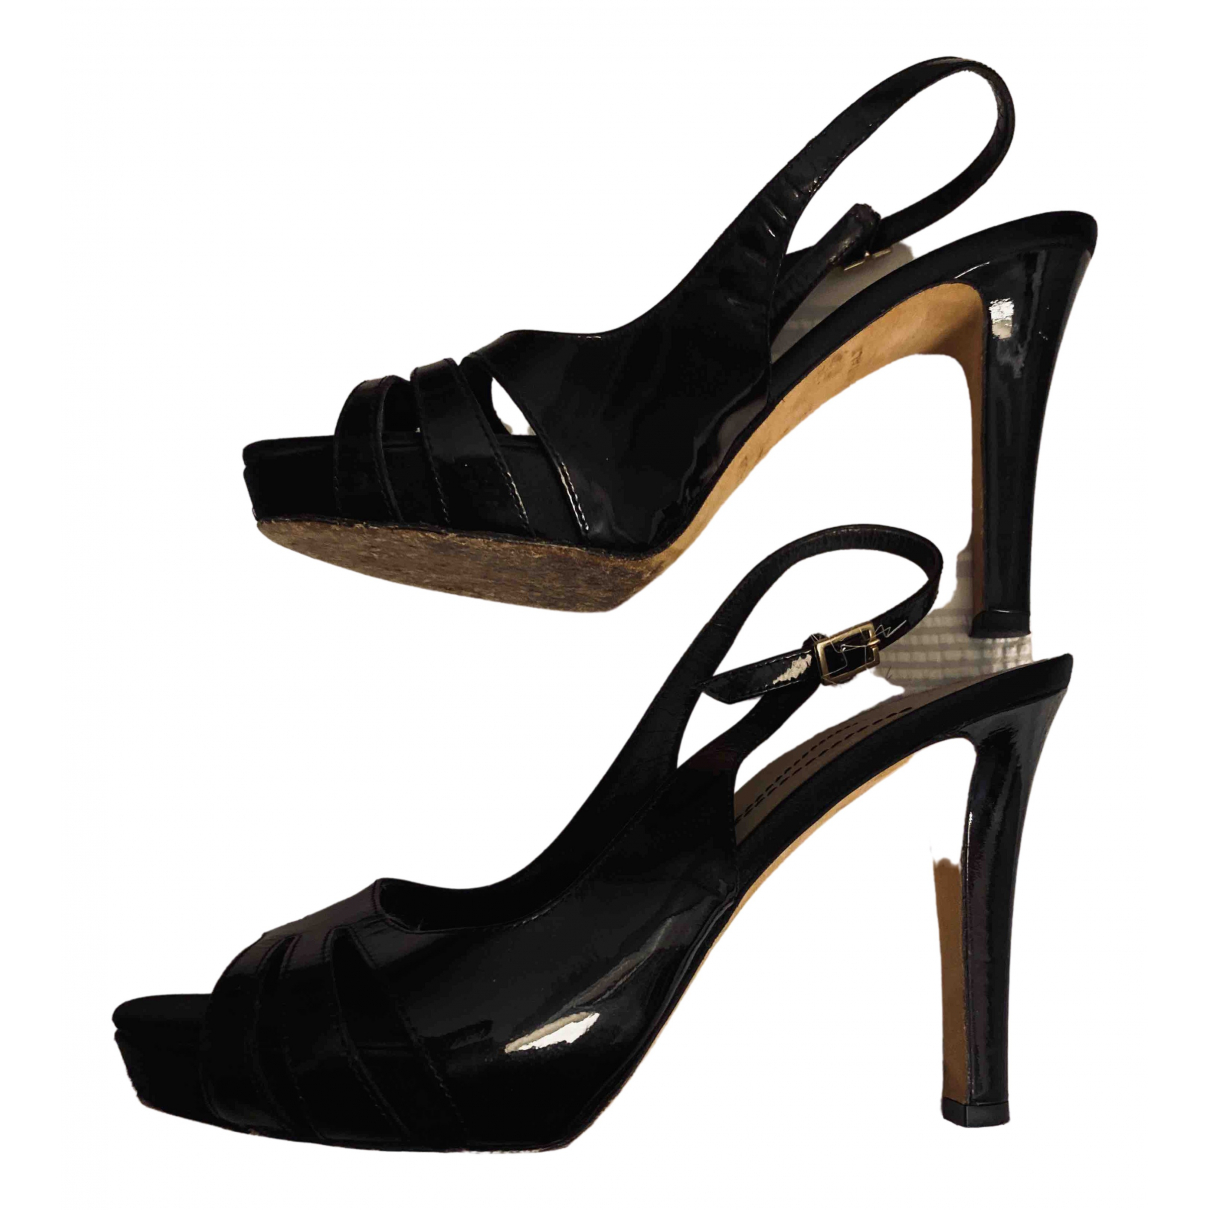 Kate Spade \N Black Patent leather Sandals for Women 6.5 US